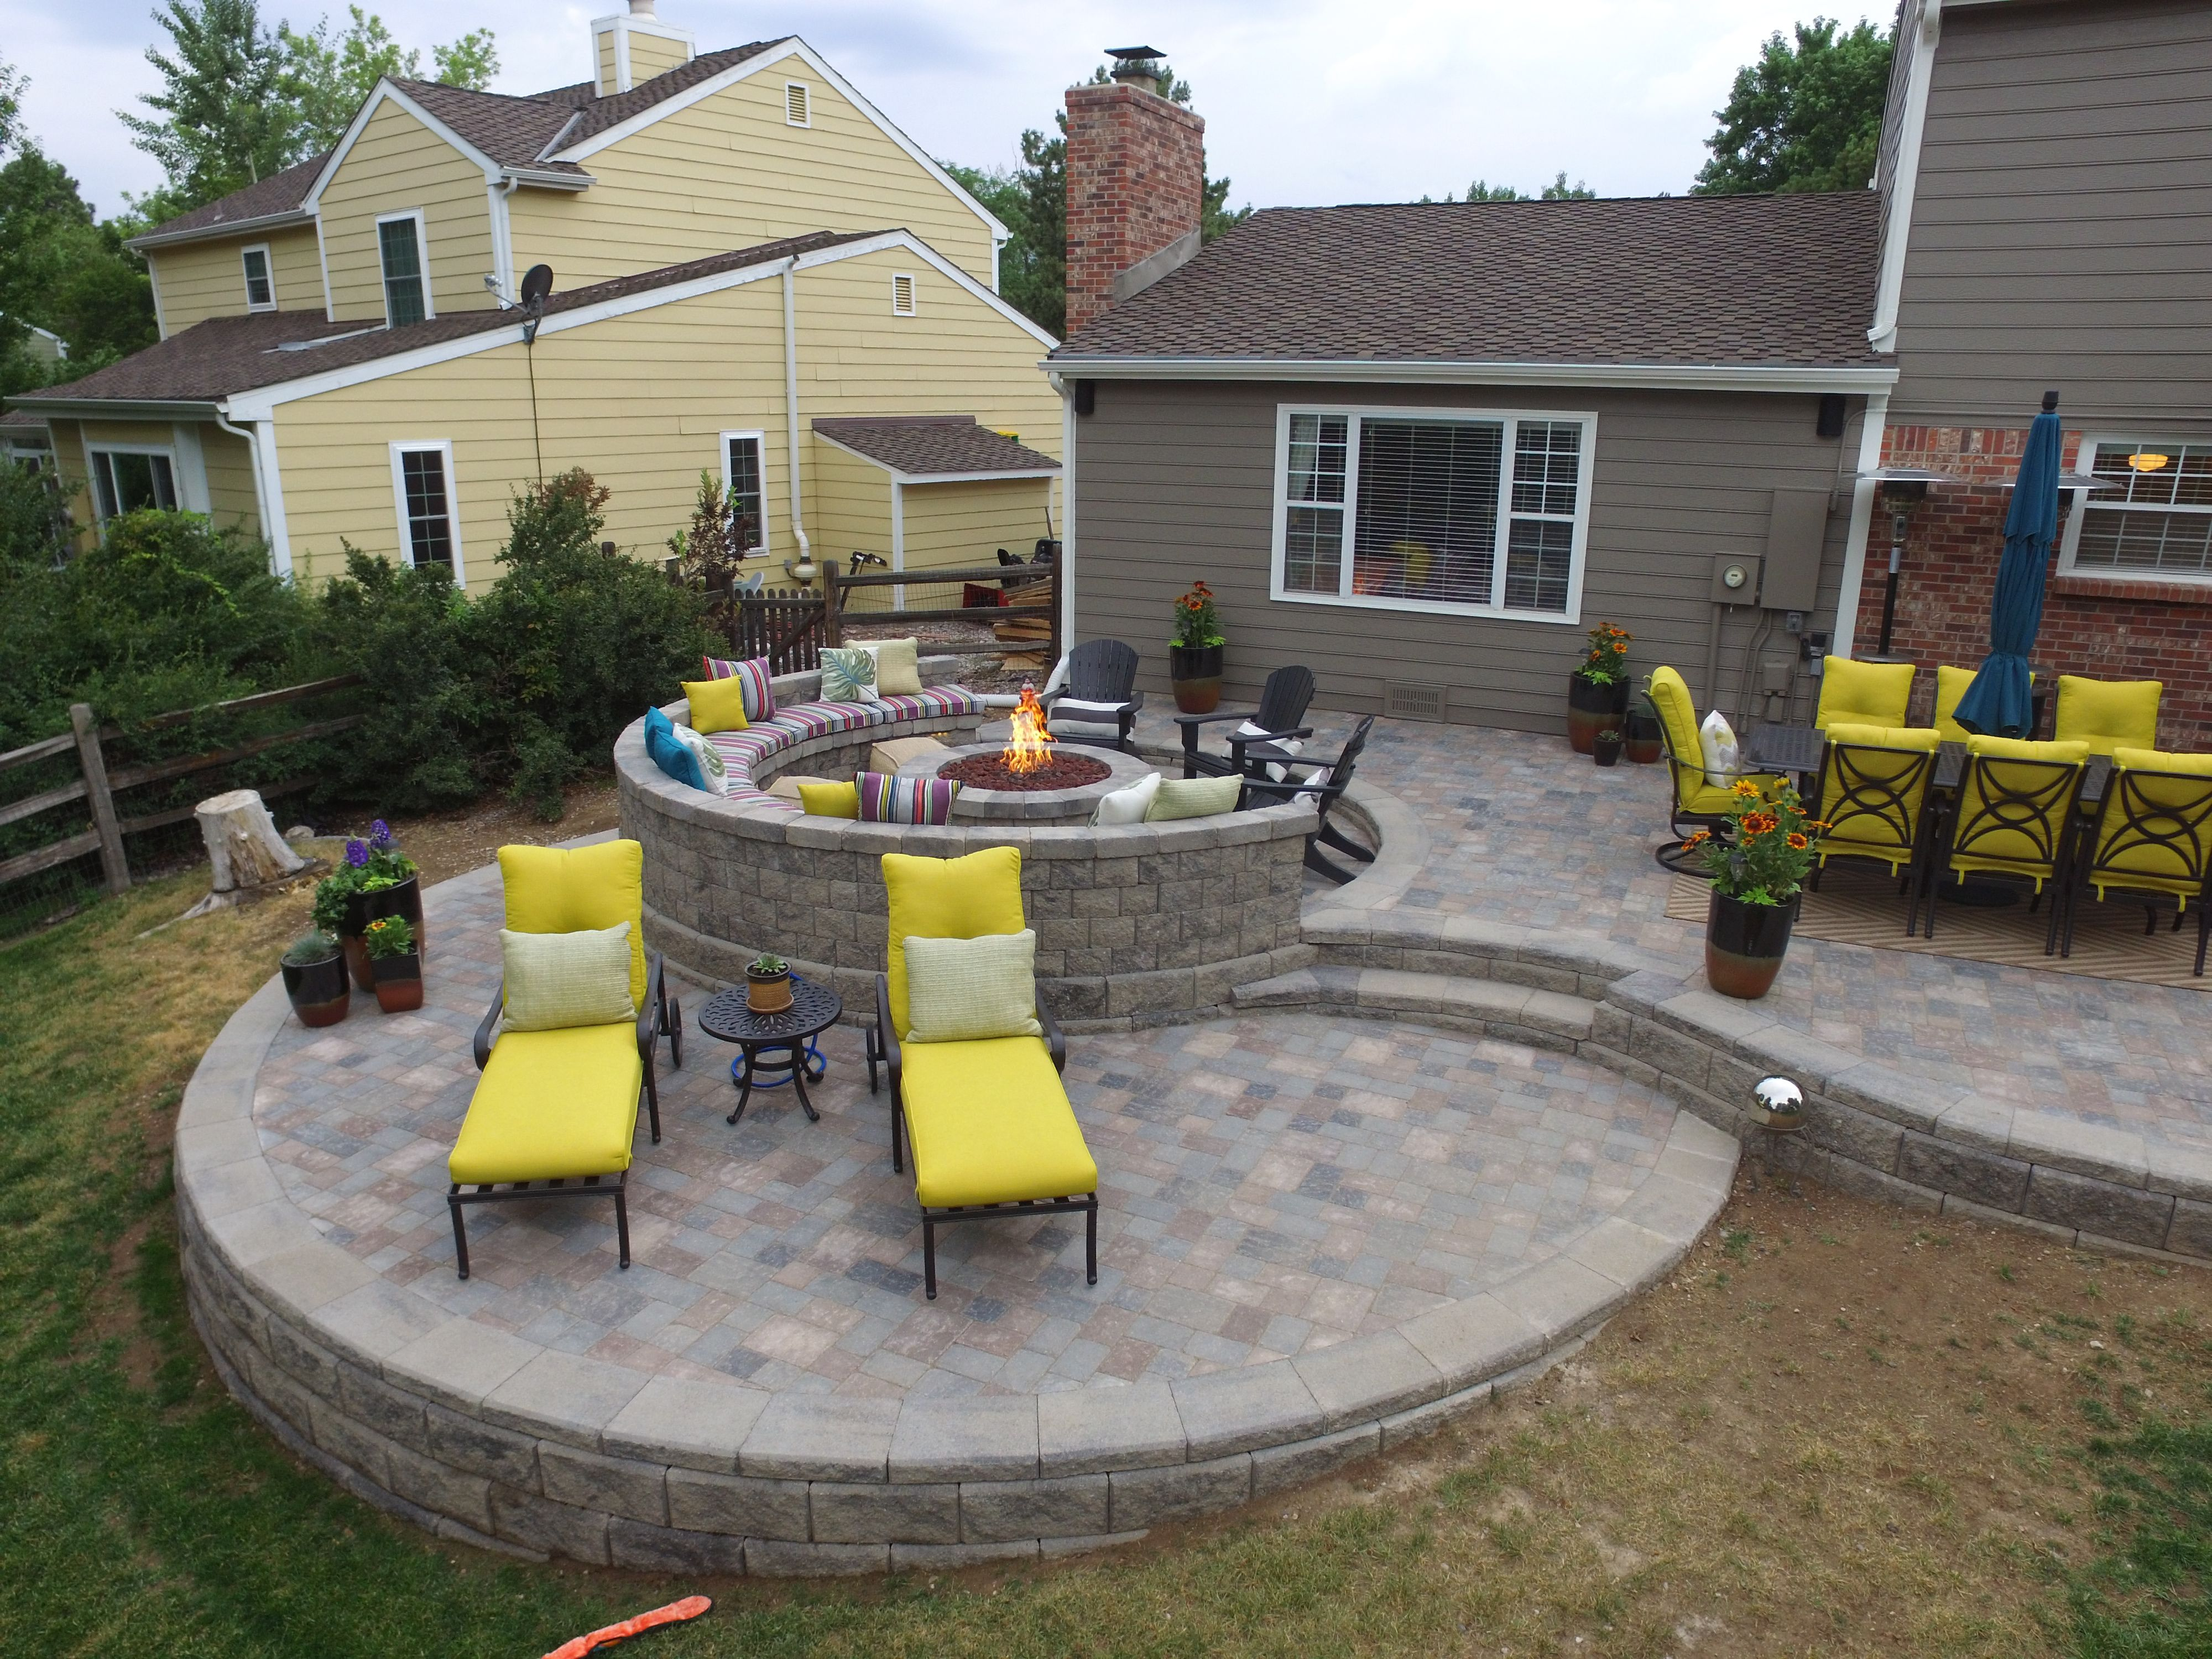 This Is A Raised Paver Patio We Built In 2017 Main Patio Structure Was Built Using Allan Block Classic Retaining Wall Blo Concrete Patio Fire Pit Plans Patio